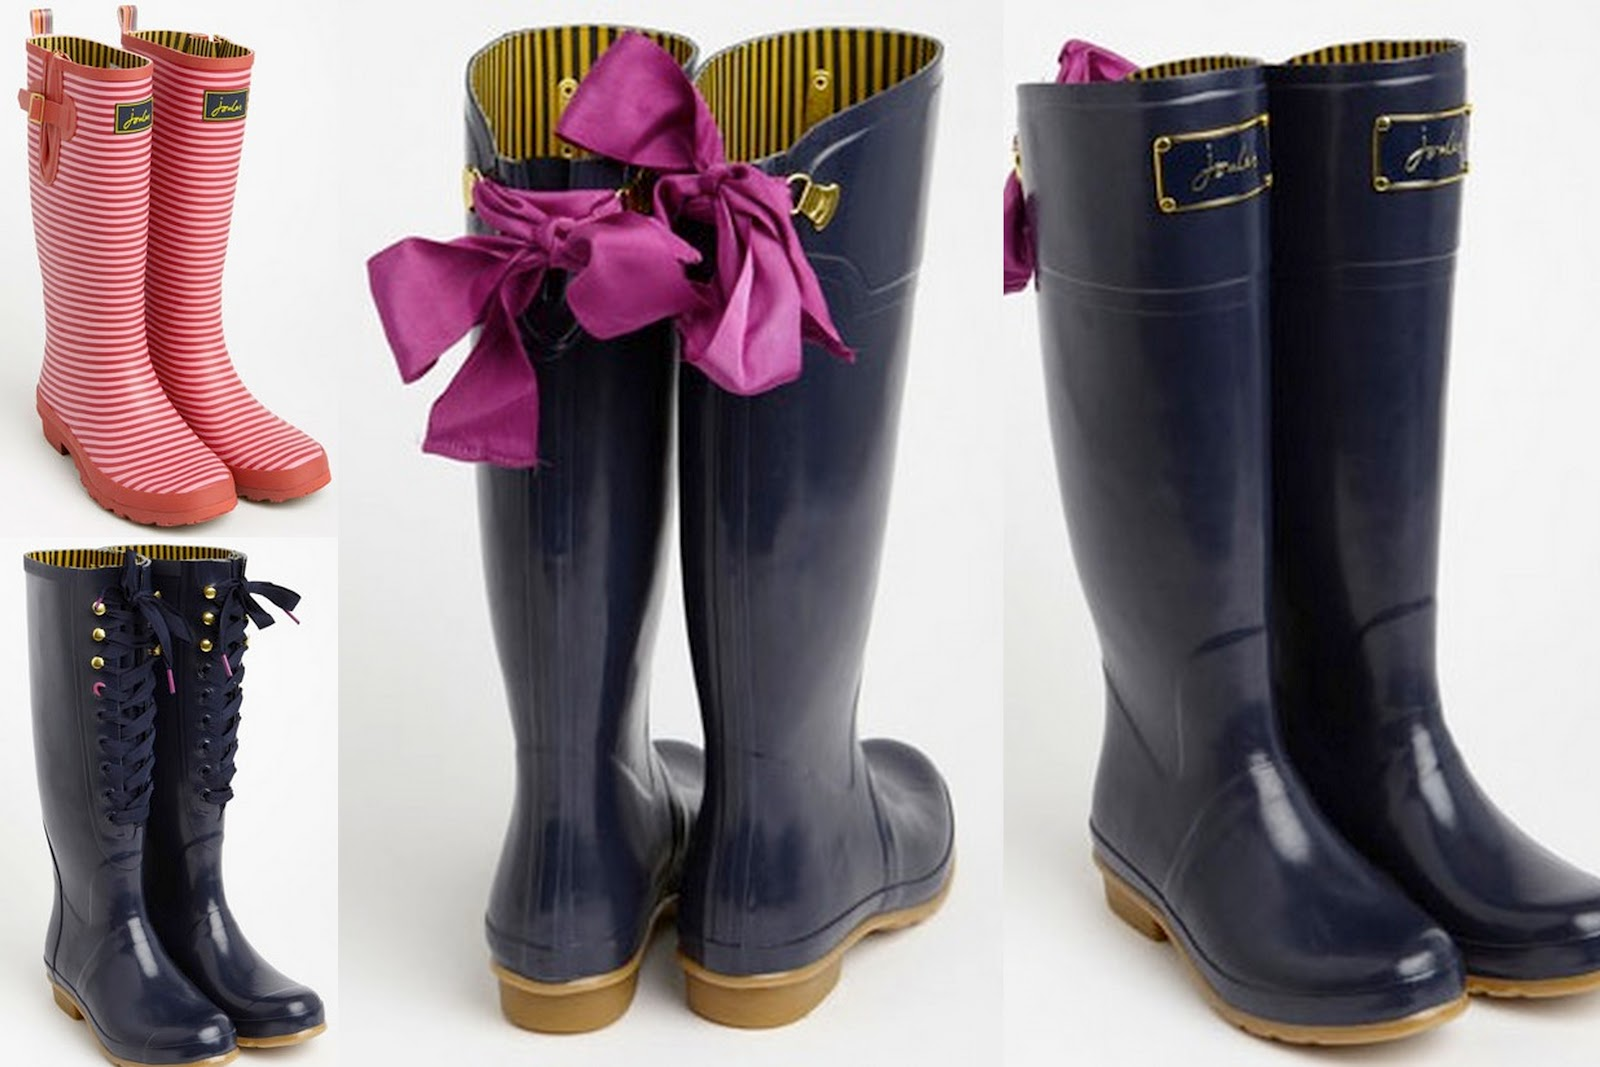 Rain Boots With Bows 37HelF0K